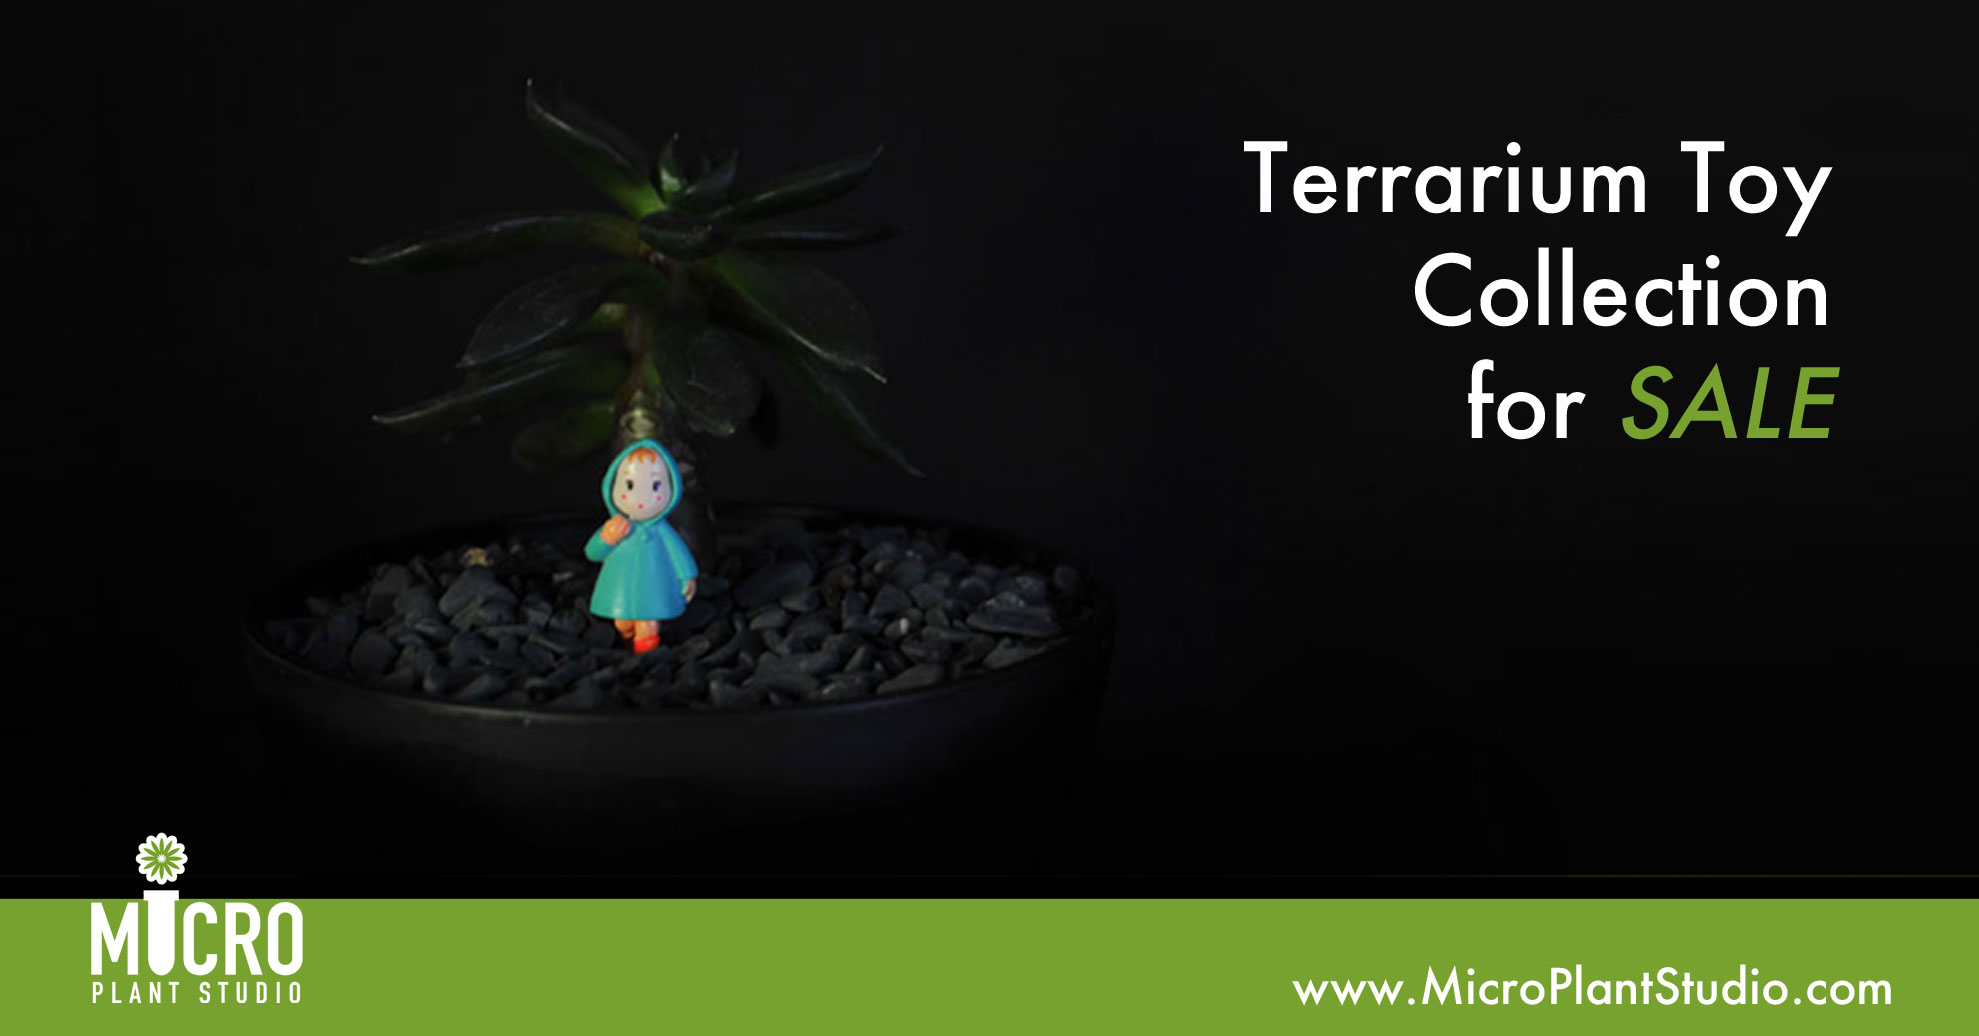 Terrarium Toy Collections Micro Plant Studio